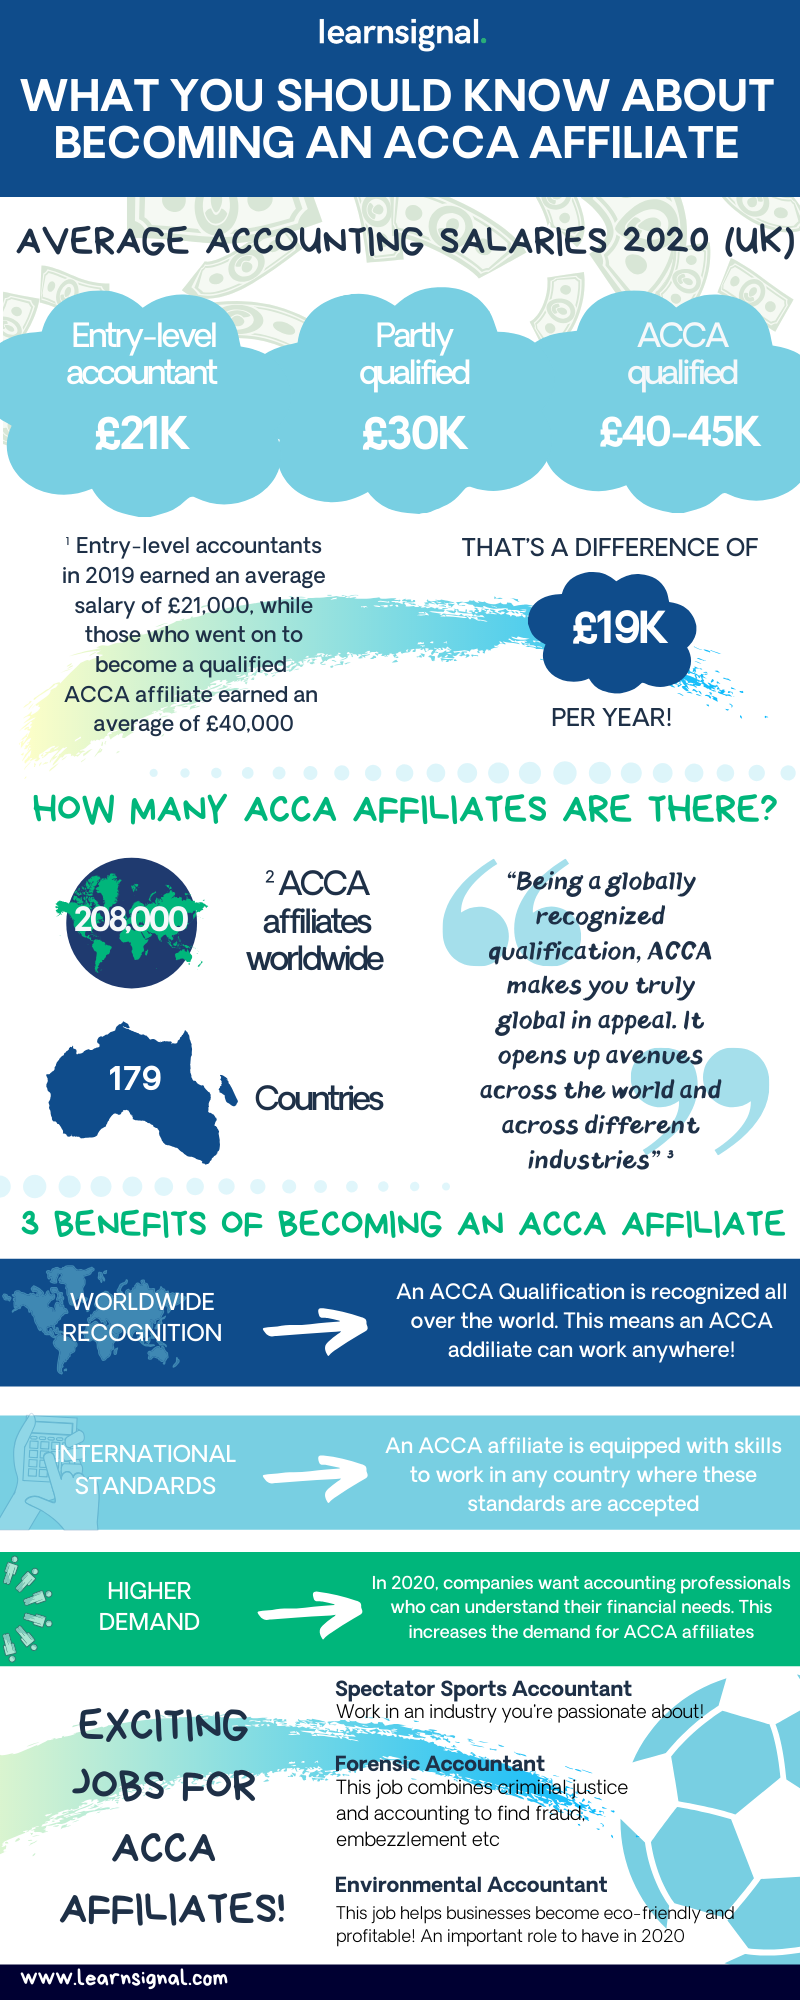 What You Should Know About Becoming an ACCA Affiliate